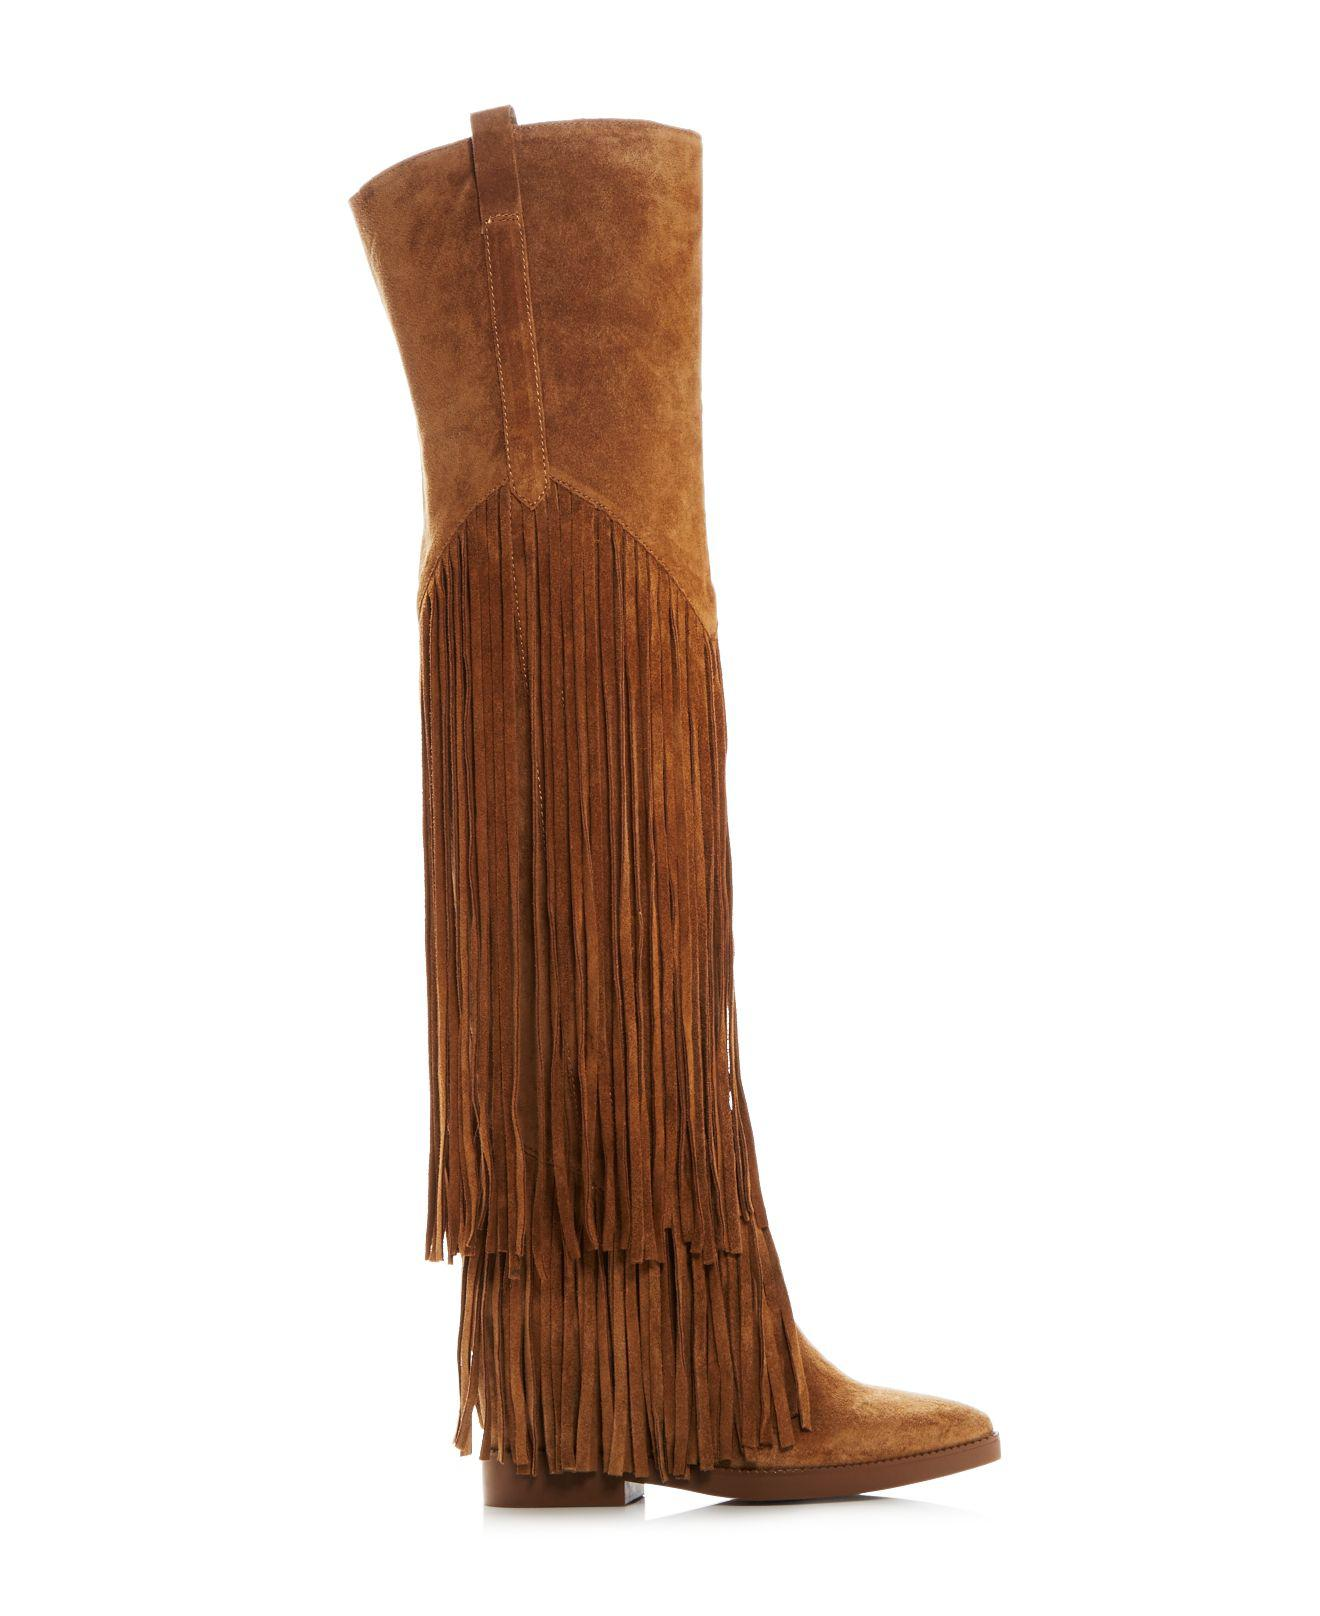 Ash Suede Gipsy Fringe Over The Knee Hidden Wedge Boots in Brown